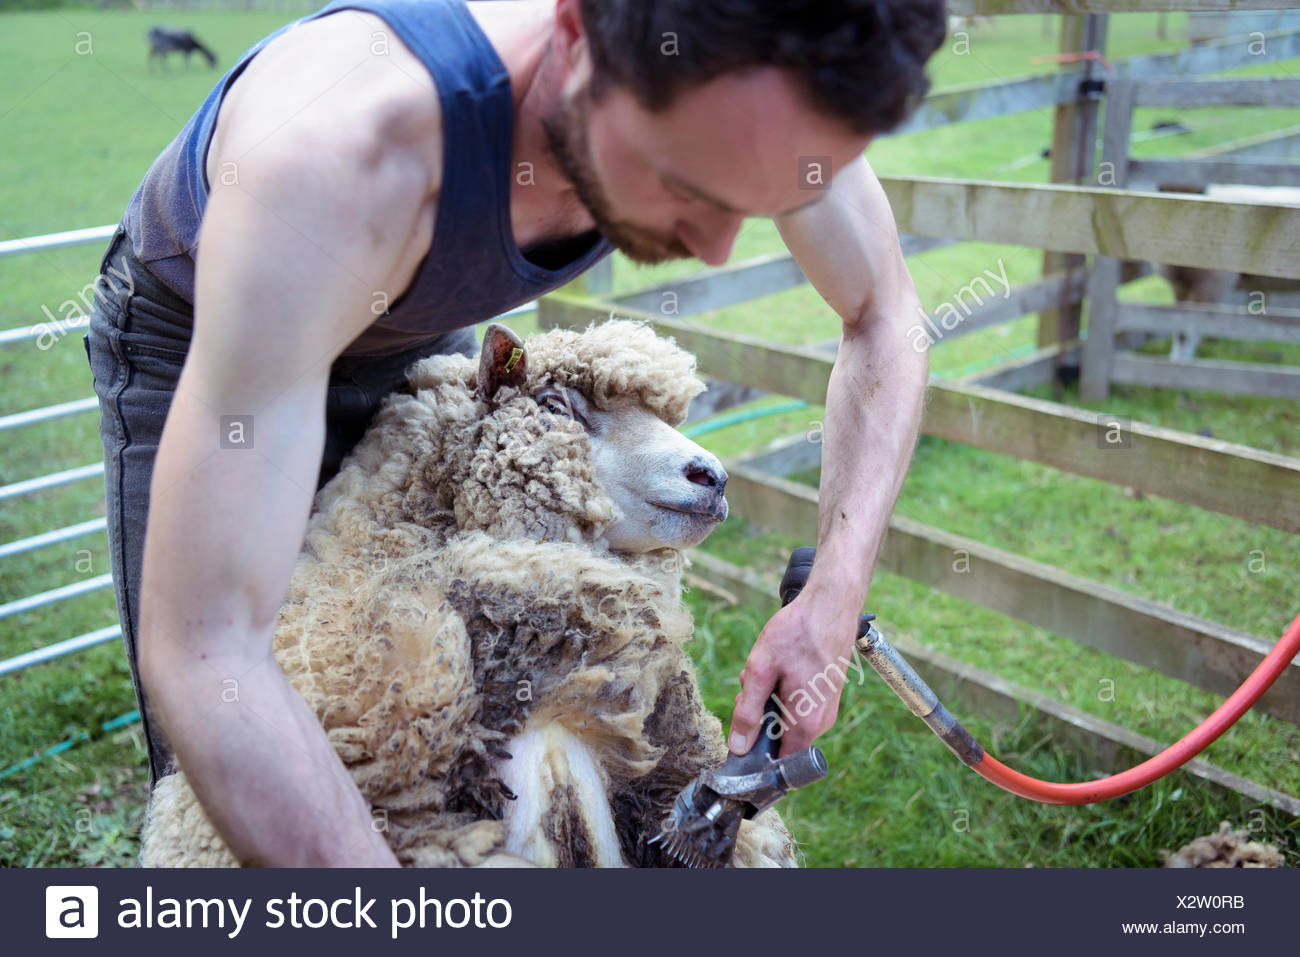 Sheep Pen Stock Photos & Sheep Pen Stock Images - Alamy